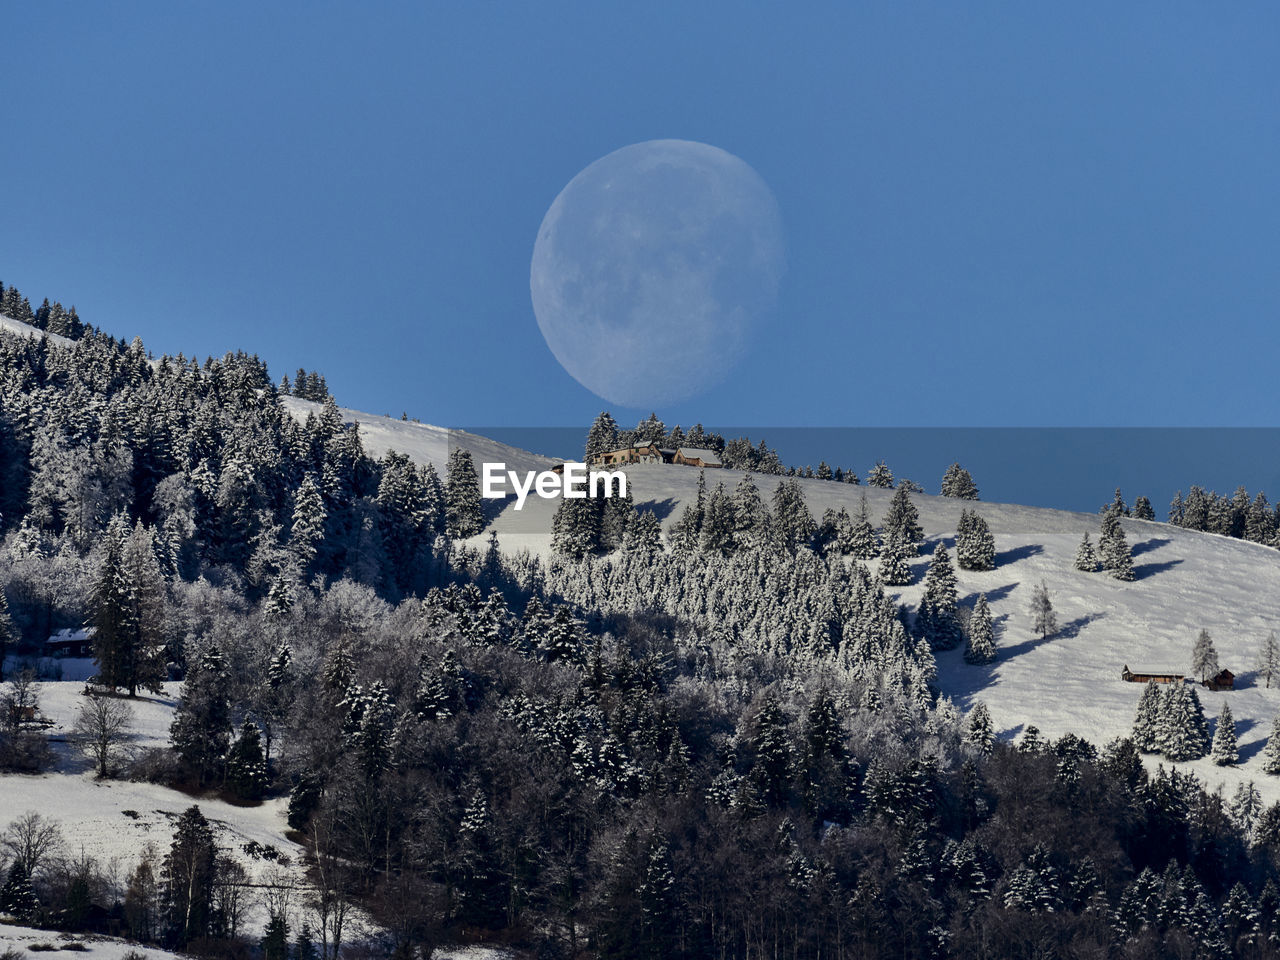 sky, tree, plant, beauty in nature, moon, scenics - nature, tranquil scene, tranquility, nature, cold temperature, snow, mountain, no people, winter, growth, clear sky, full moon, non-urban scene, land, outdoors, astronomy, snowcapped mountain, planetary moon